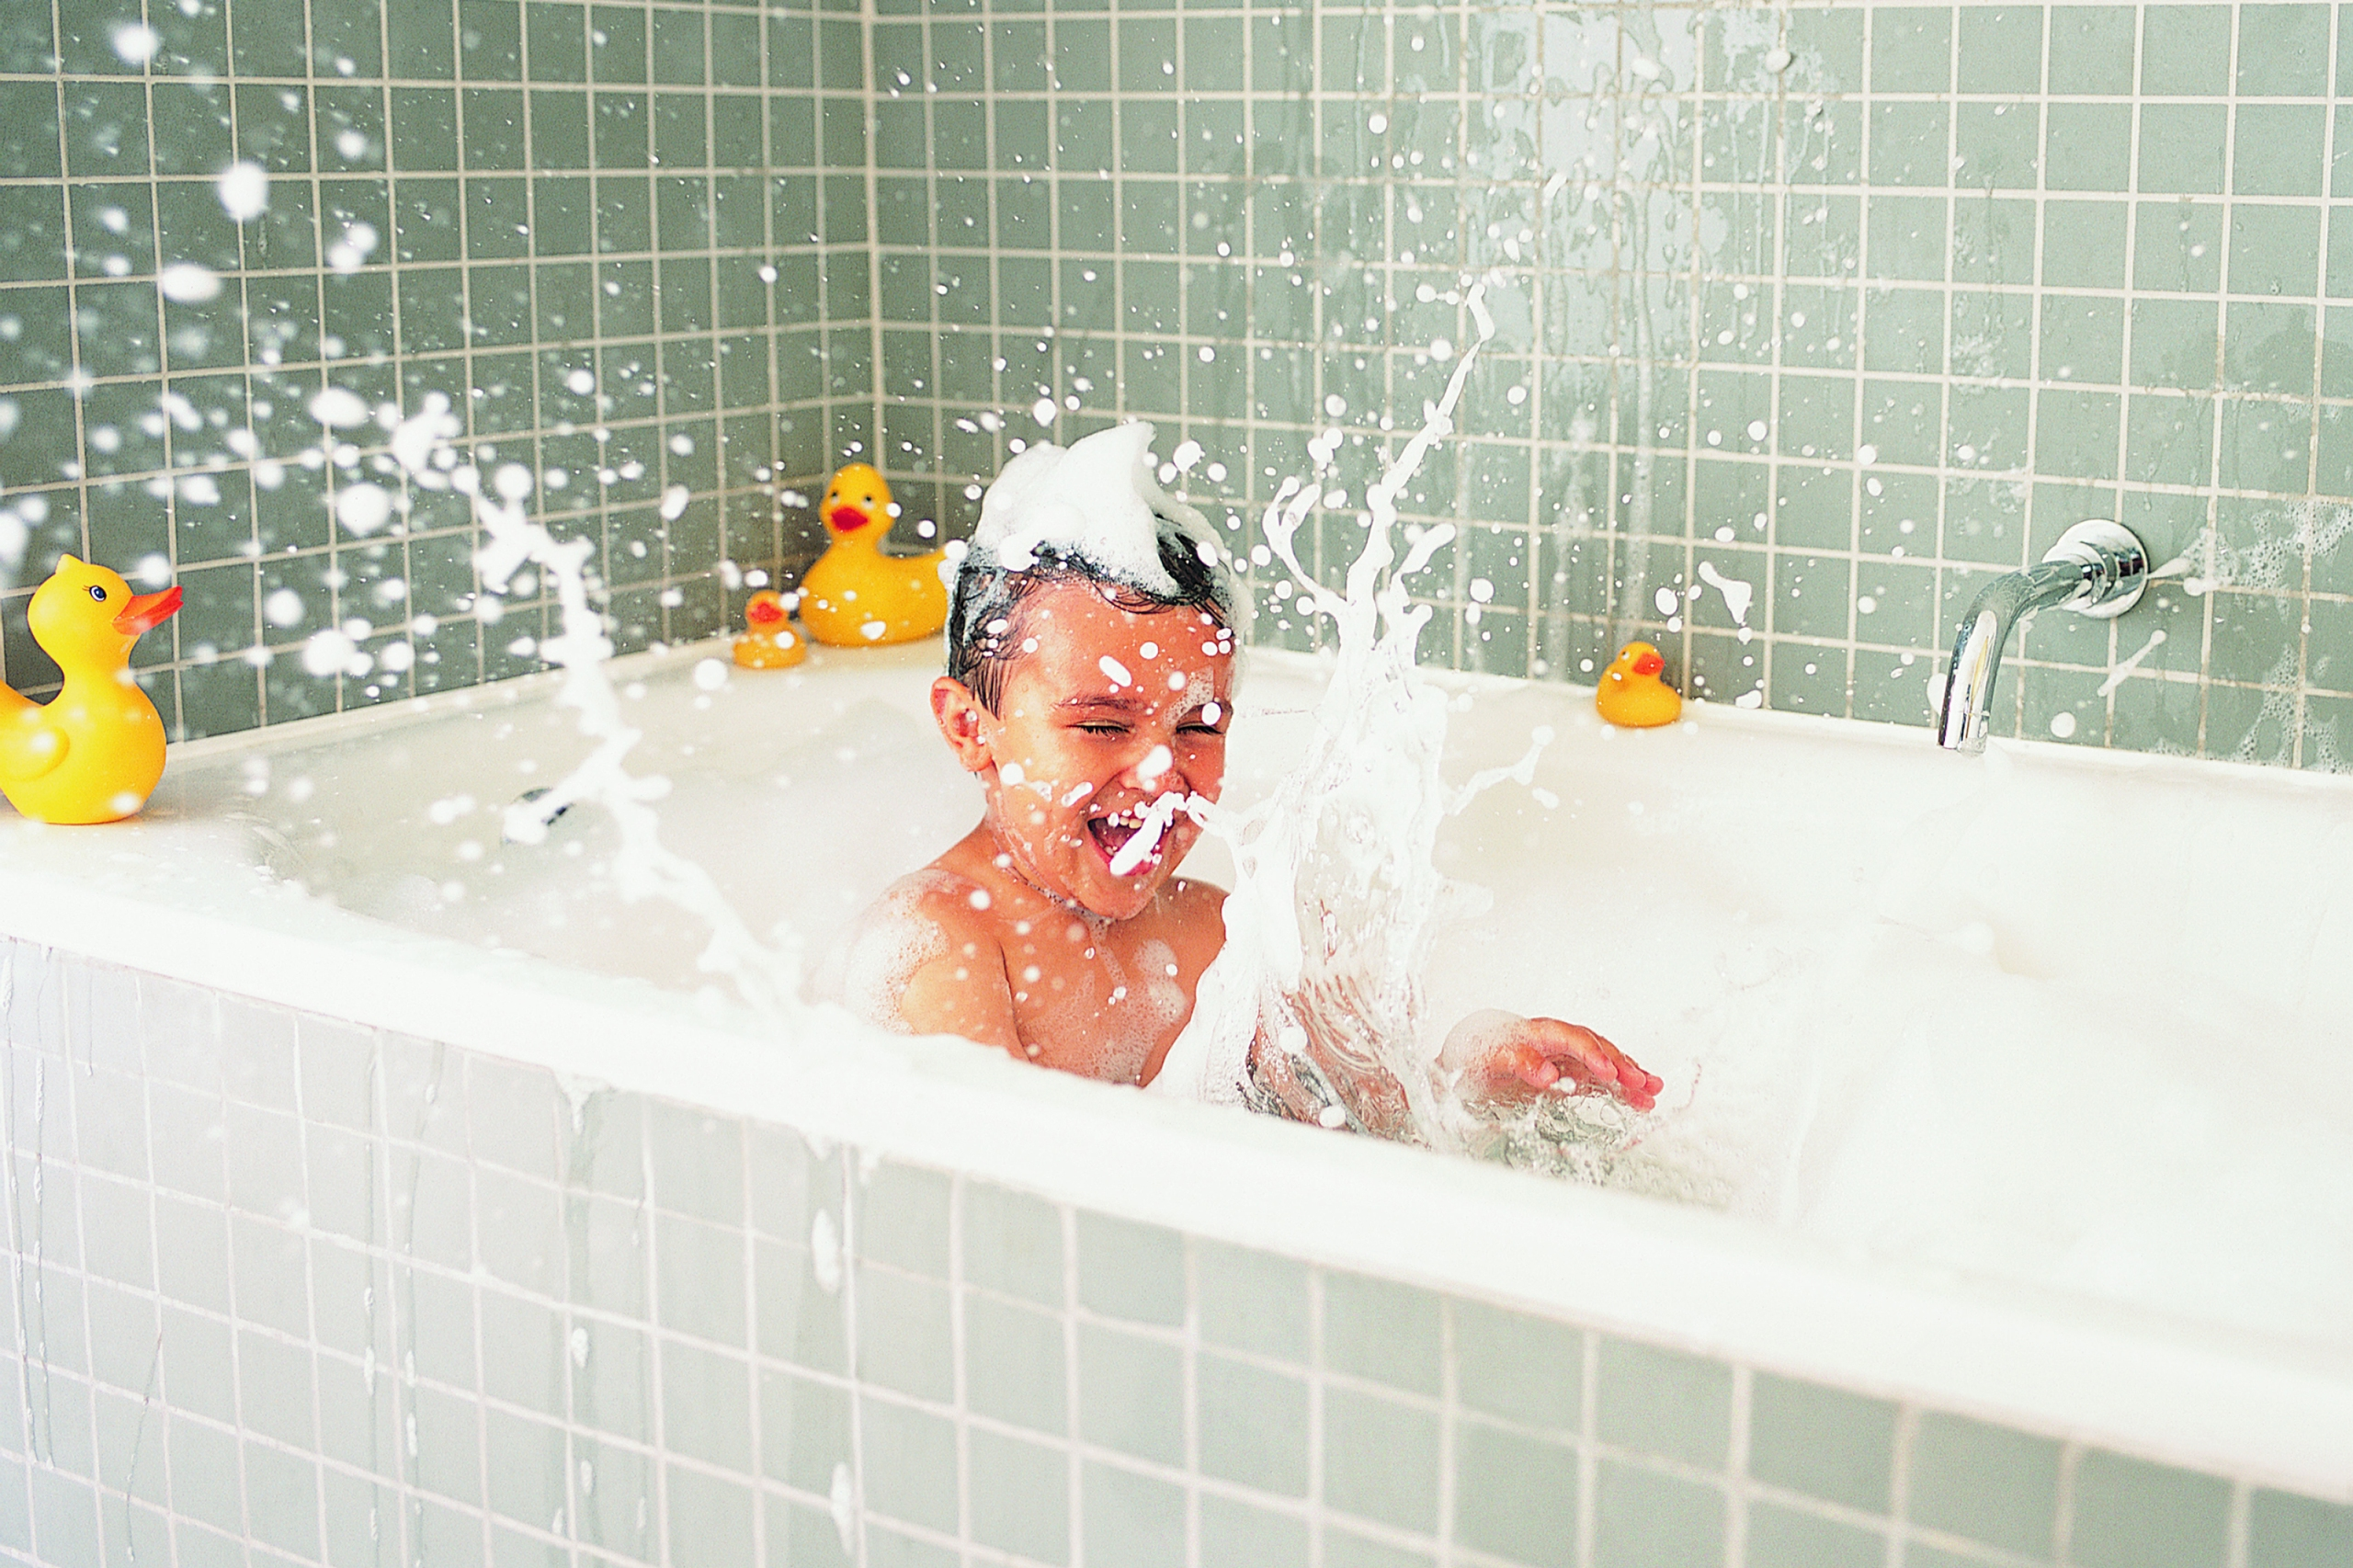 A young boy in a bath tub surrounded with bubbles & ducks